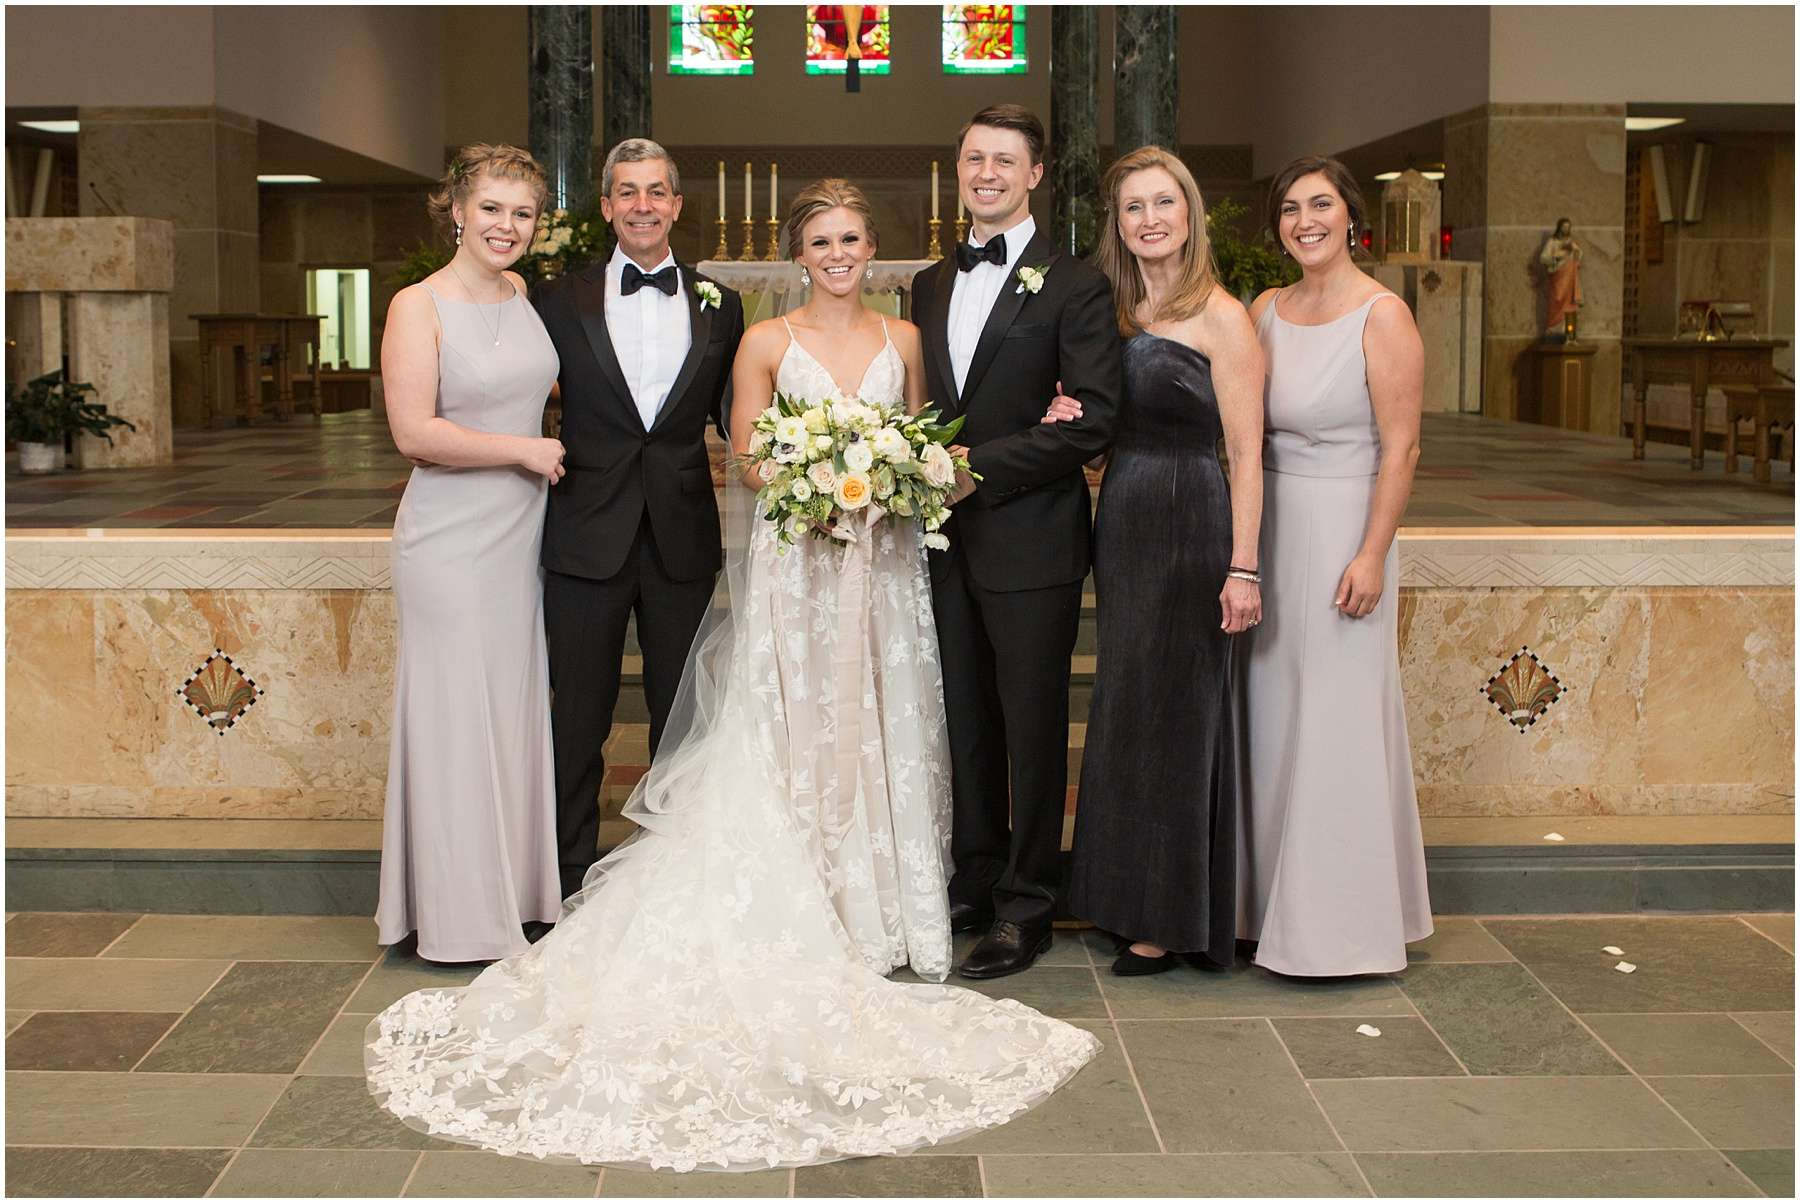 Wedding at the Ohio Statehouse | Columbus Ohio Weddings 126